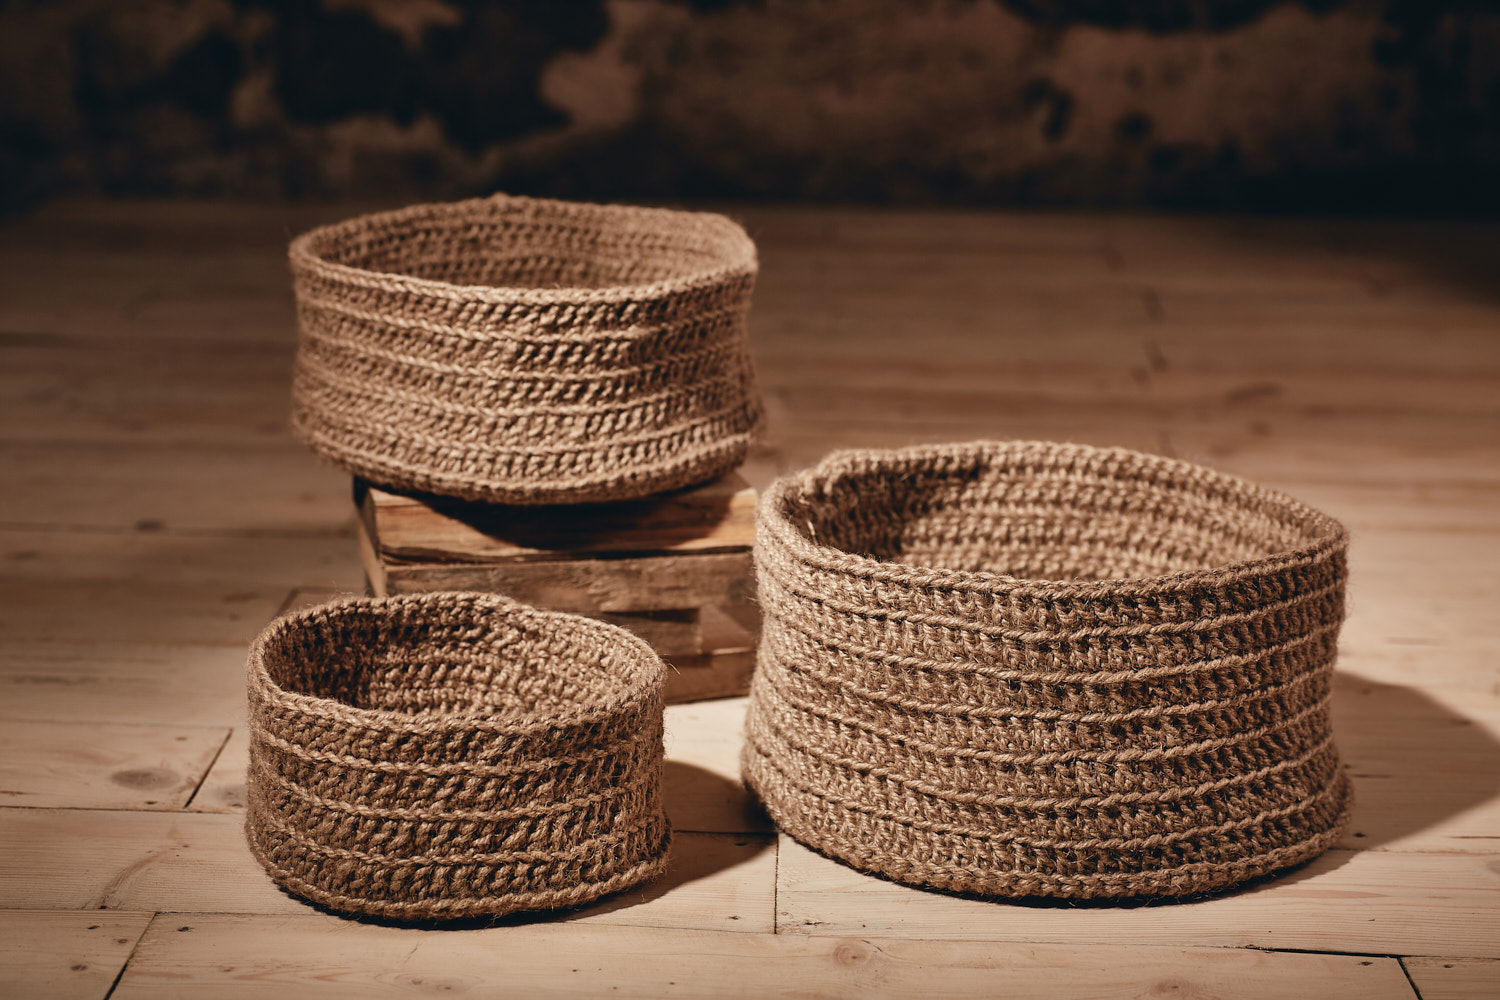 BASKETS   Round, multi-use, hand-crocheted baskets   Eco Twine Available in:  Small - Approx. 23cm x 12cm  Medium - Approx.30cm x 15cm  Large - Approx. 35cm x 18cm